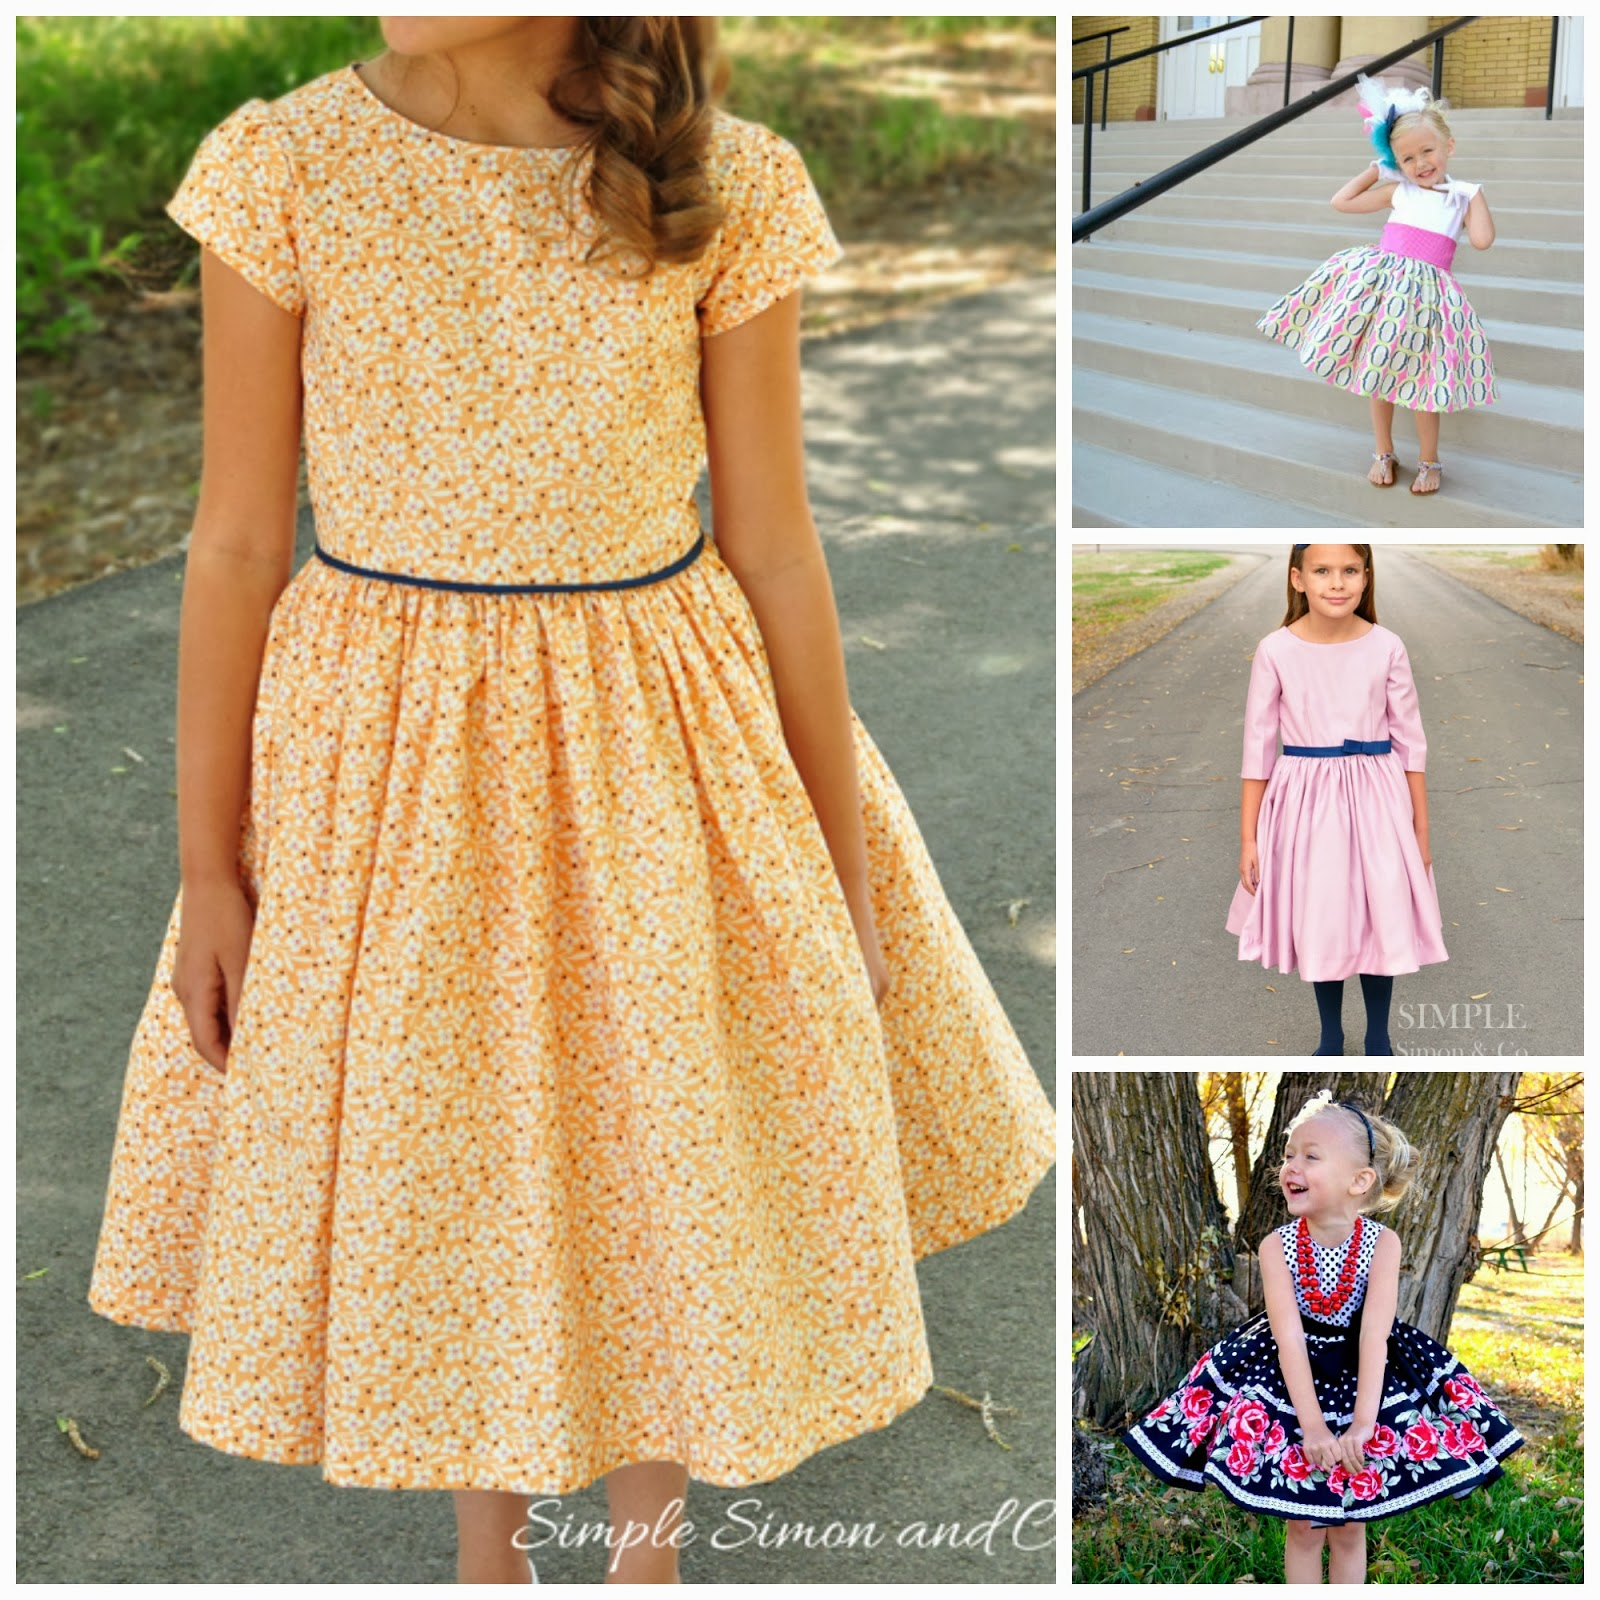 Dress with a fluffy skirt. Pattern dress with a full skirt 86